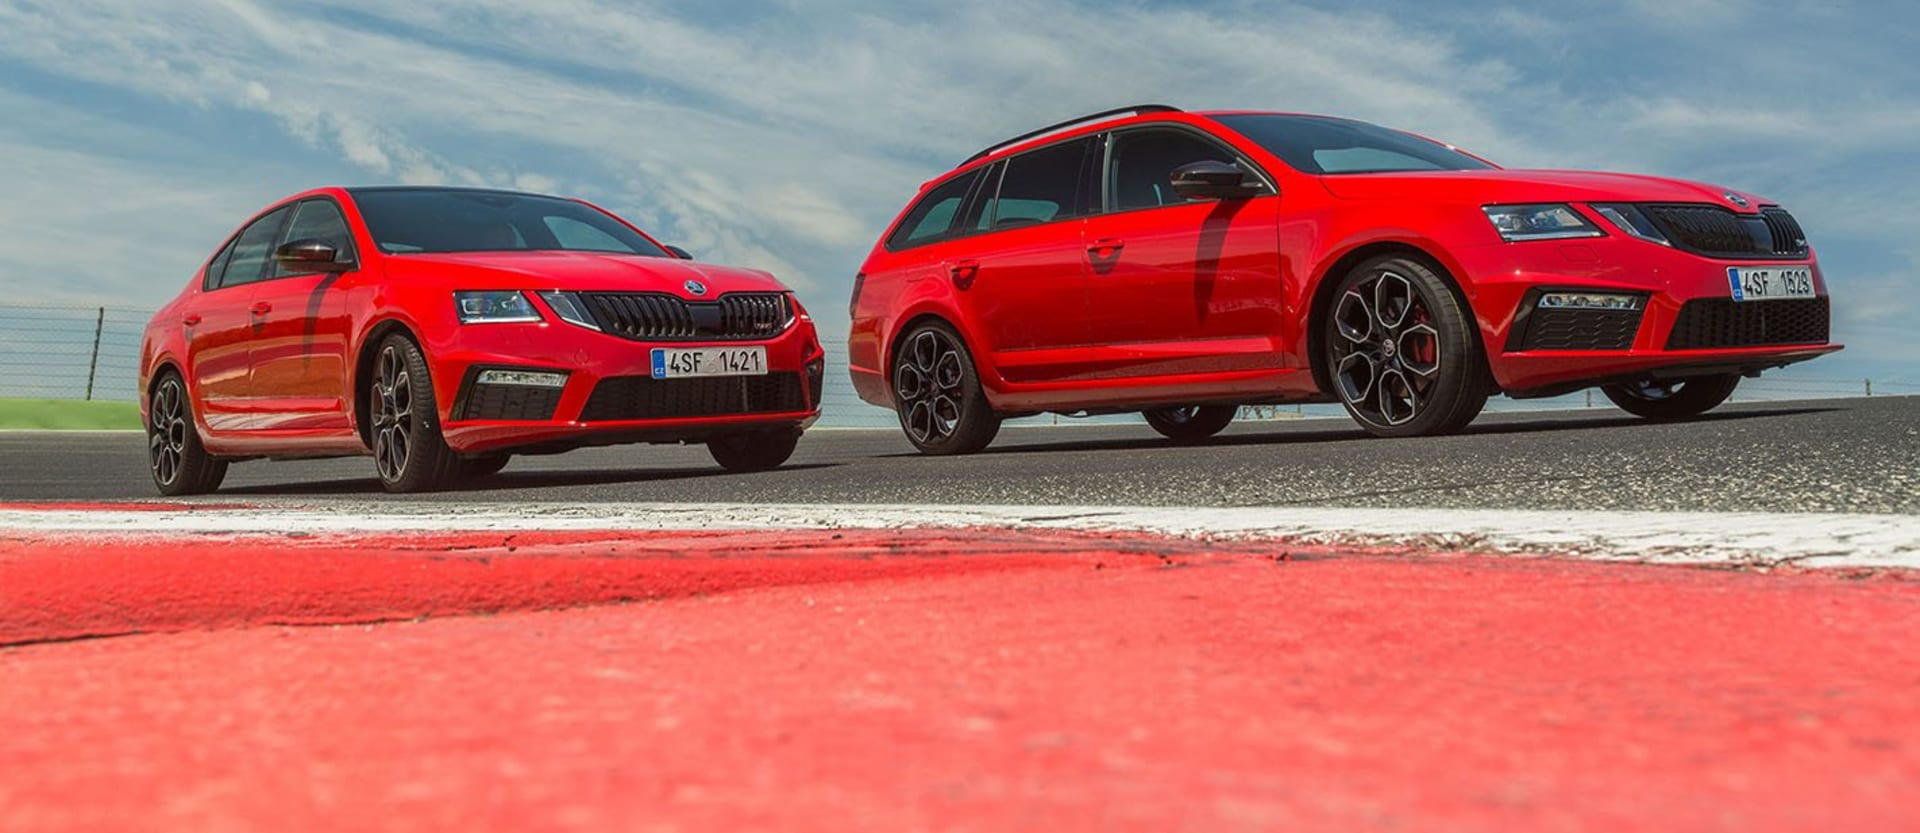 2017 Skoda Octavia RS 245 pricing and features